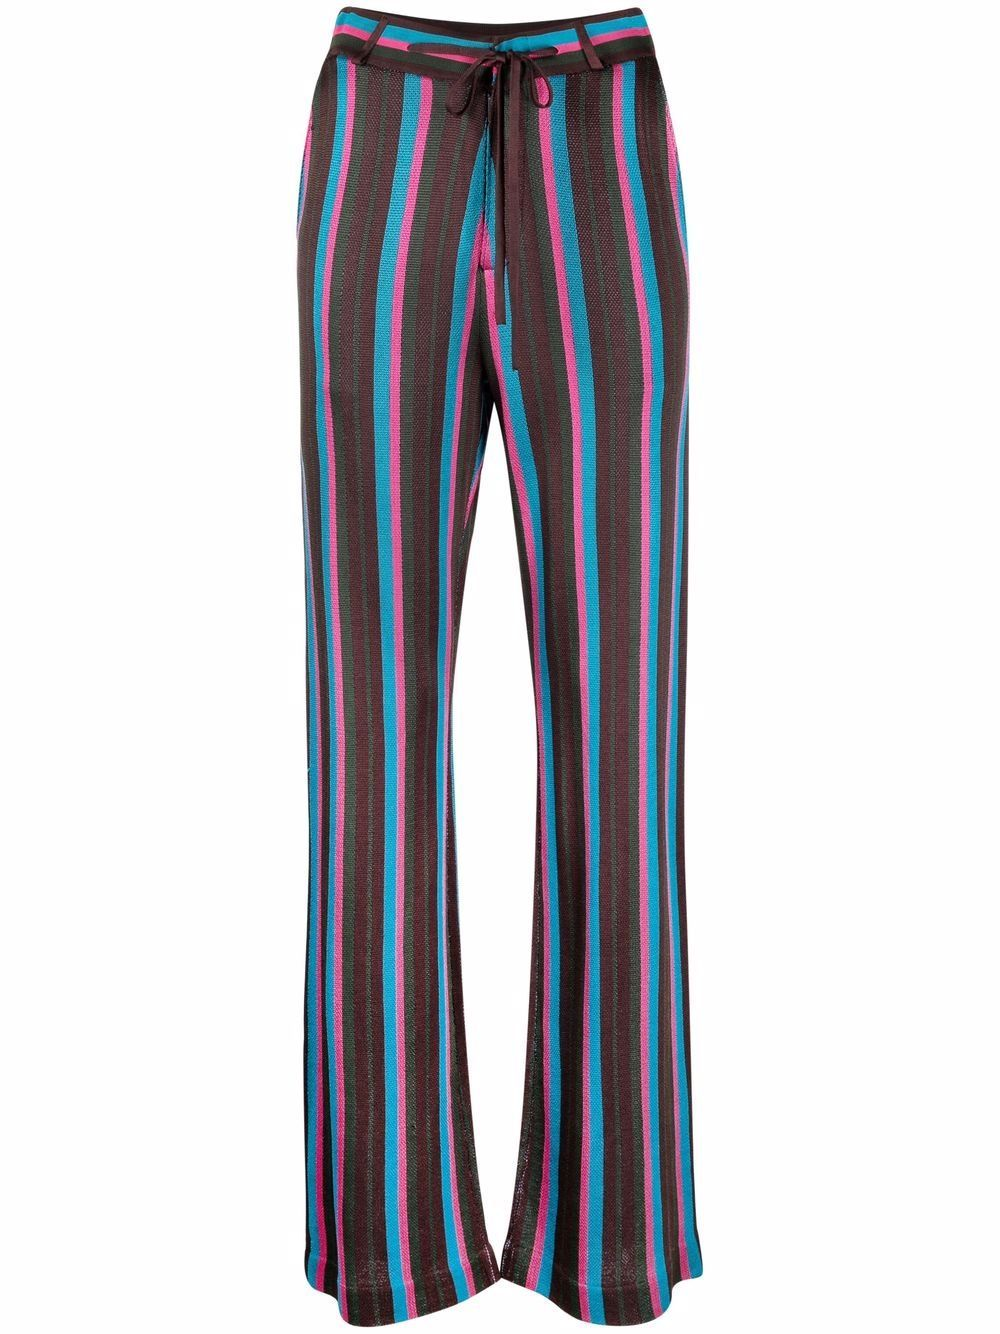 Striped Knit Trousers